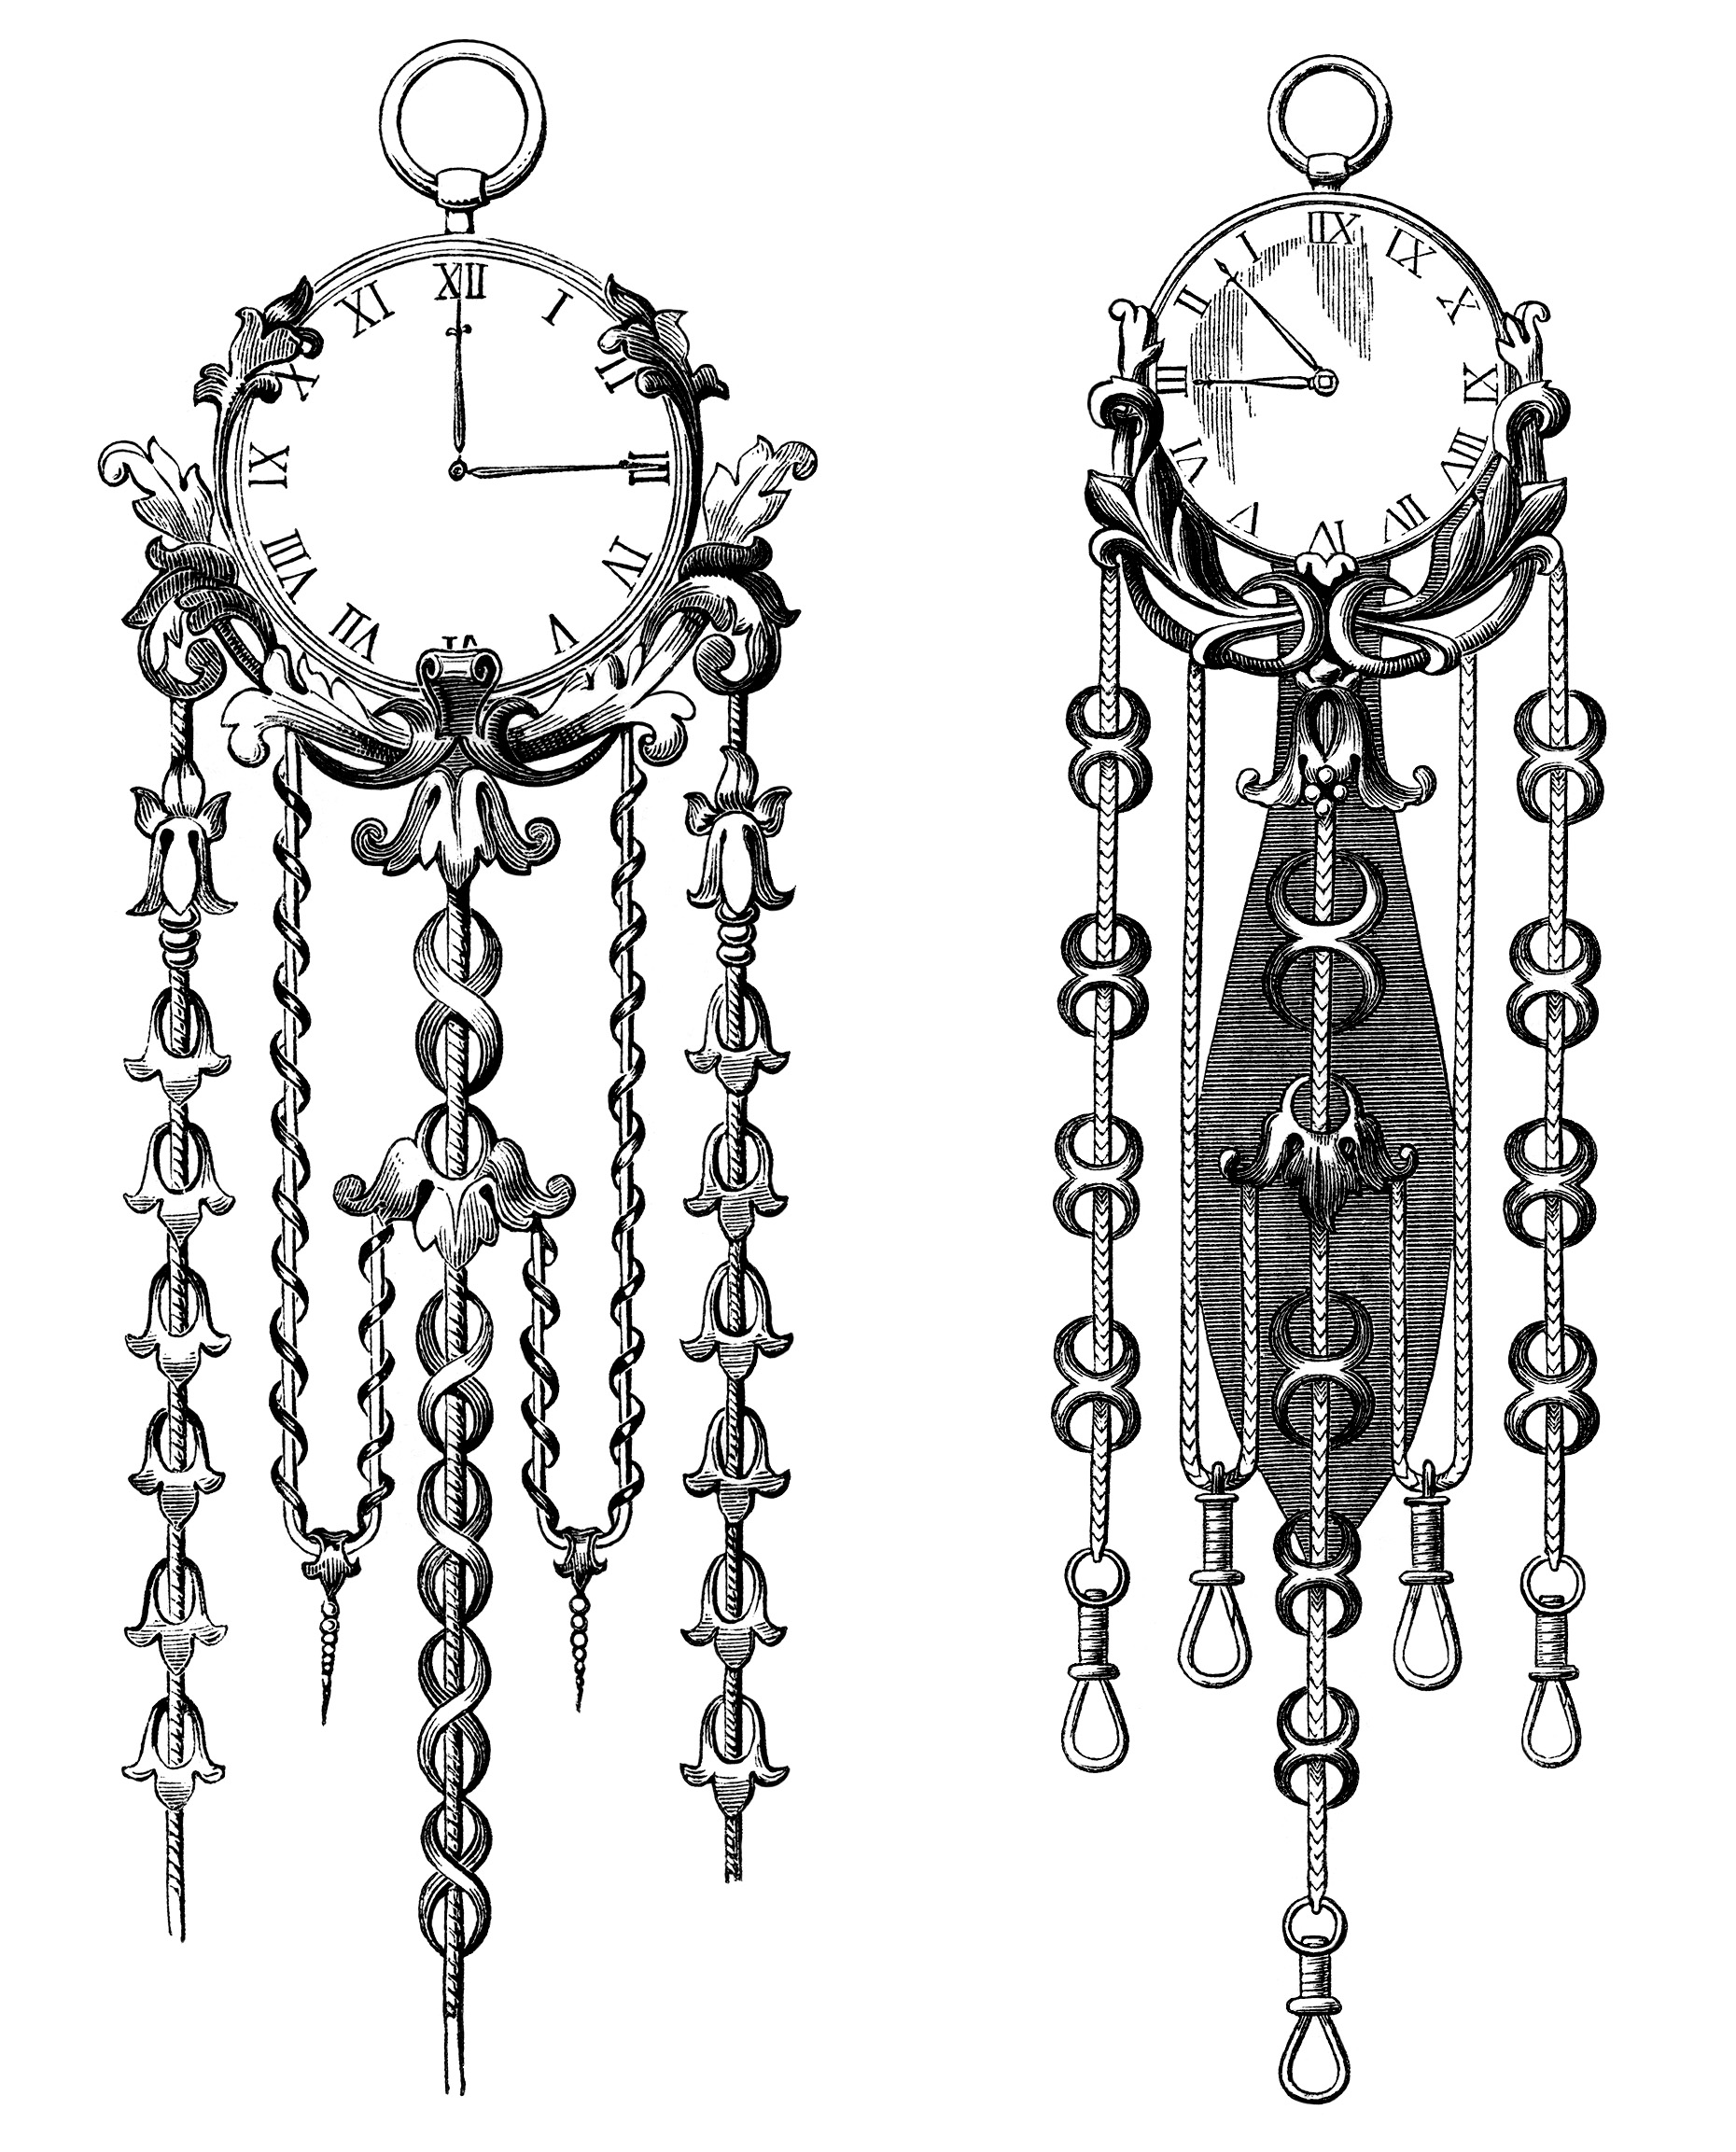 Victorian clock illustration, vintage clock clip art, black and white graphics free, old fashioned clock, antique clock engraving